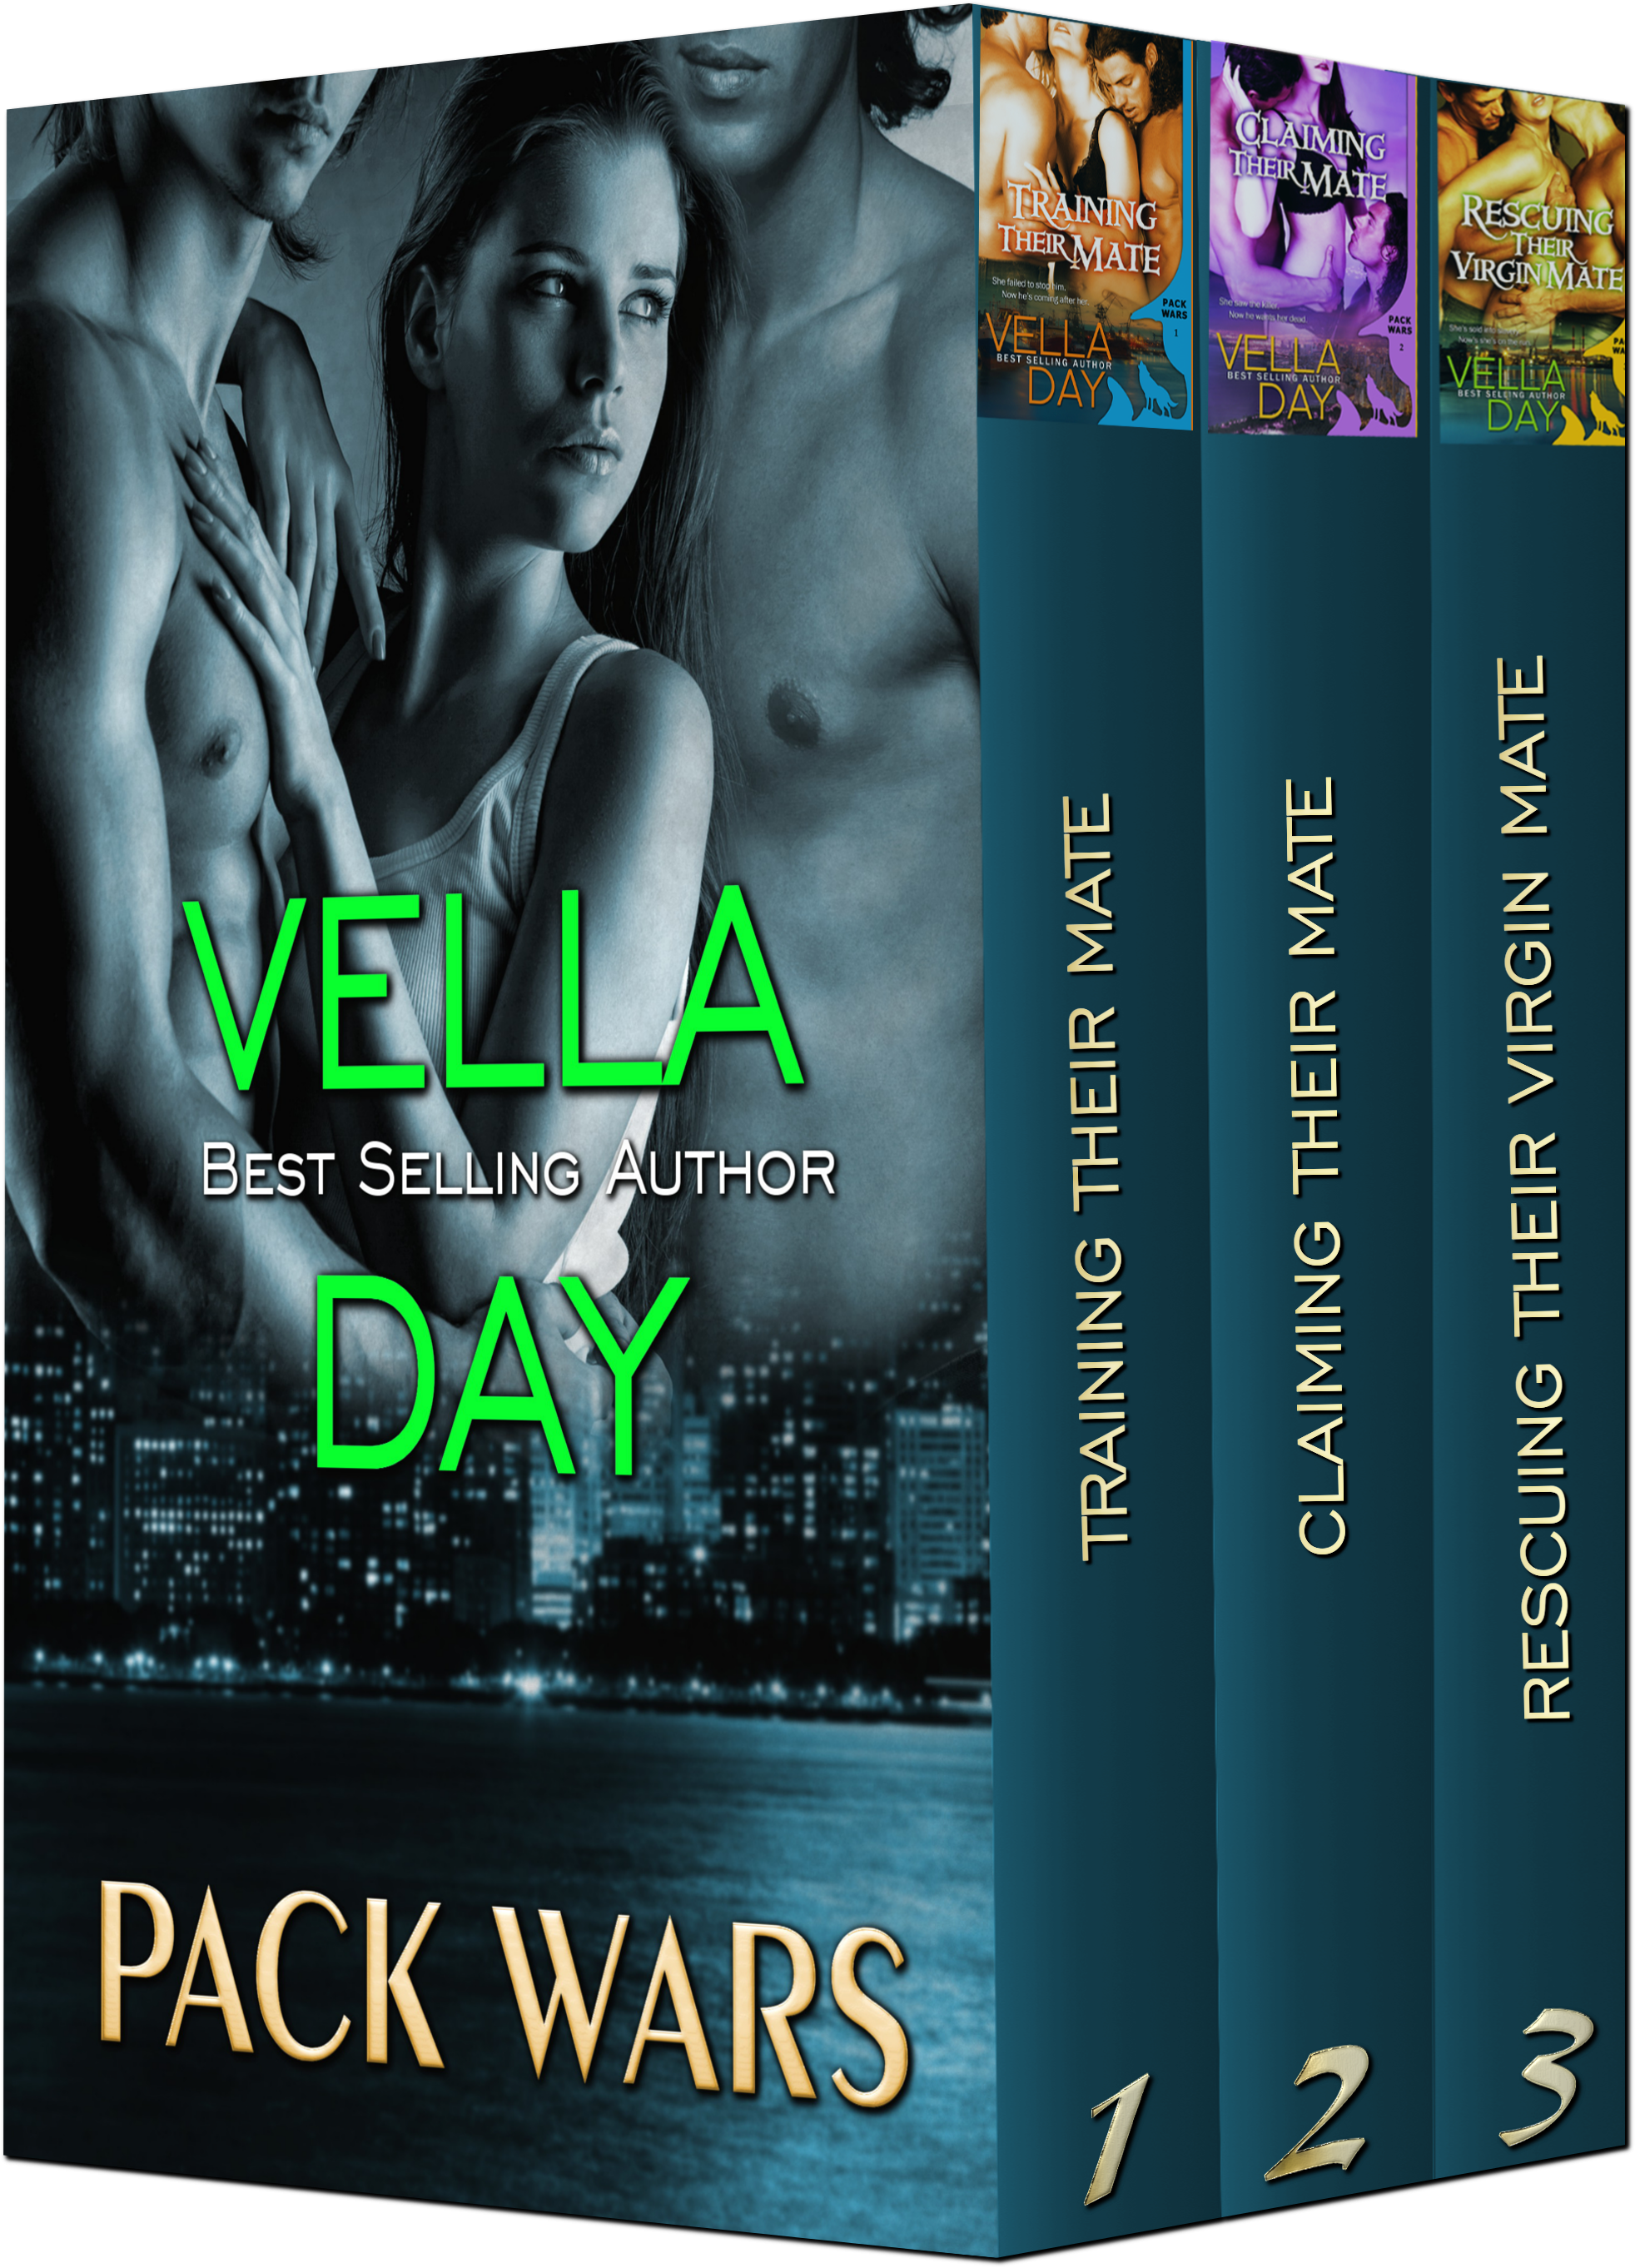 Vella Day - Pack Wars(Boxed Set of 3 books)